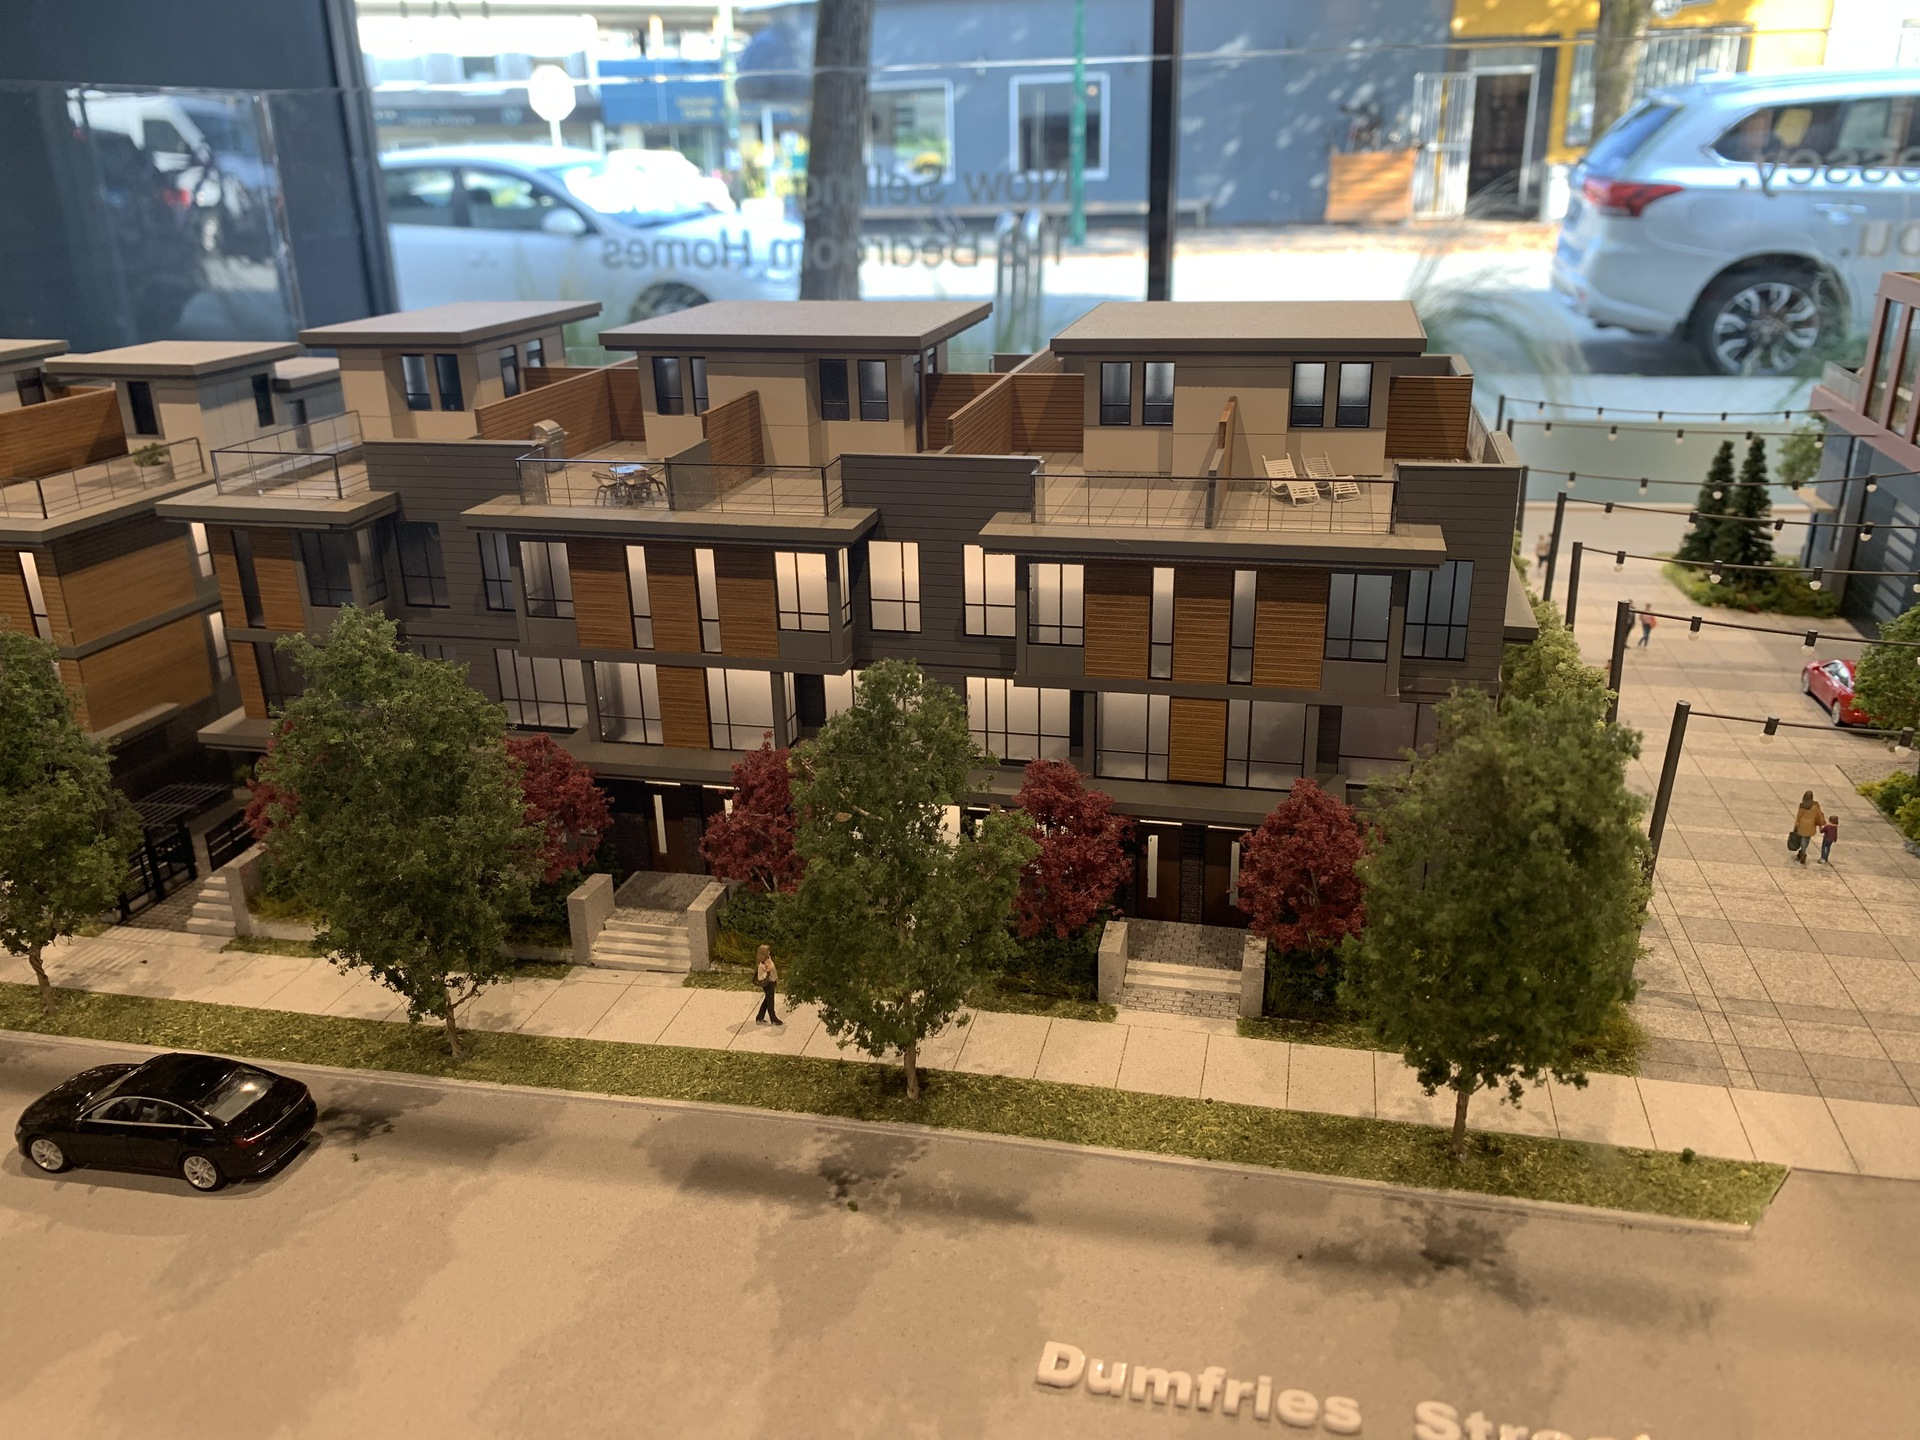 Format townhomes facing Dumfries  at FORMAT (1503 Kingsway Street, Knight, Vancouver East)